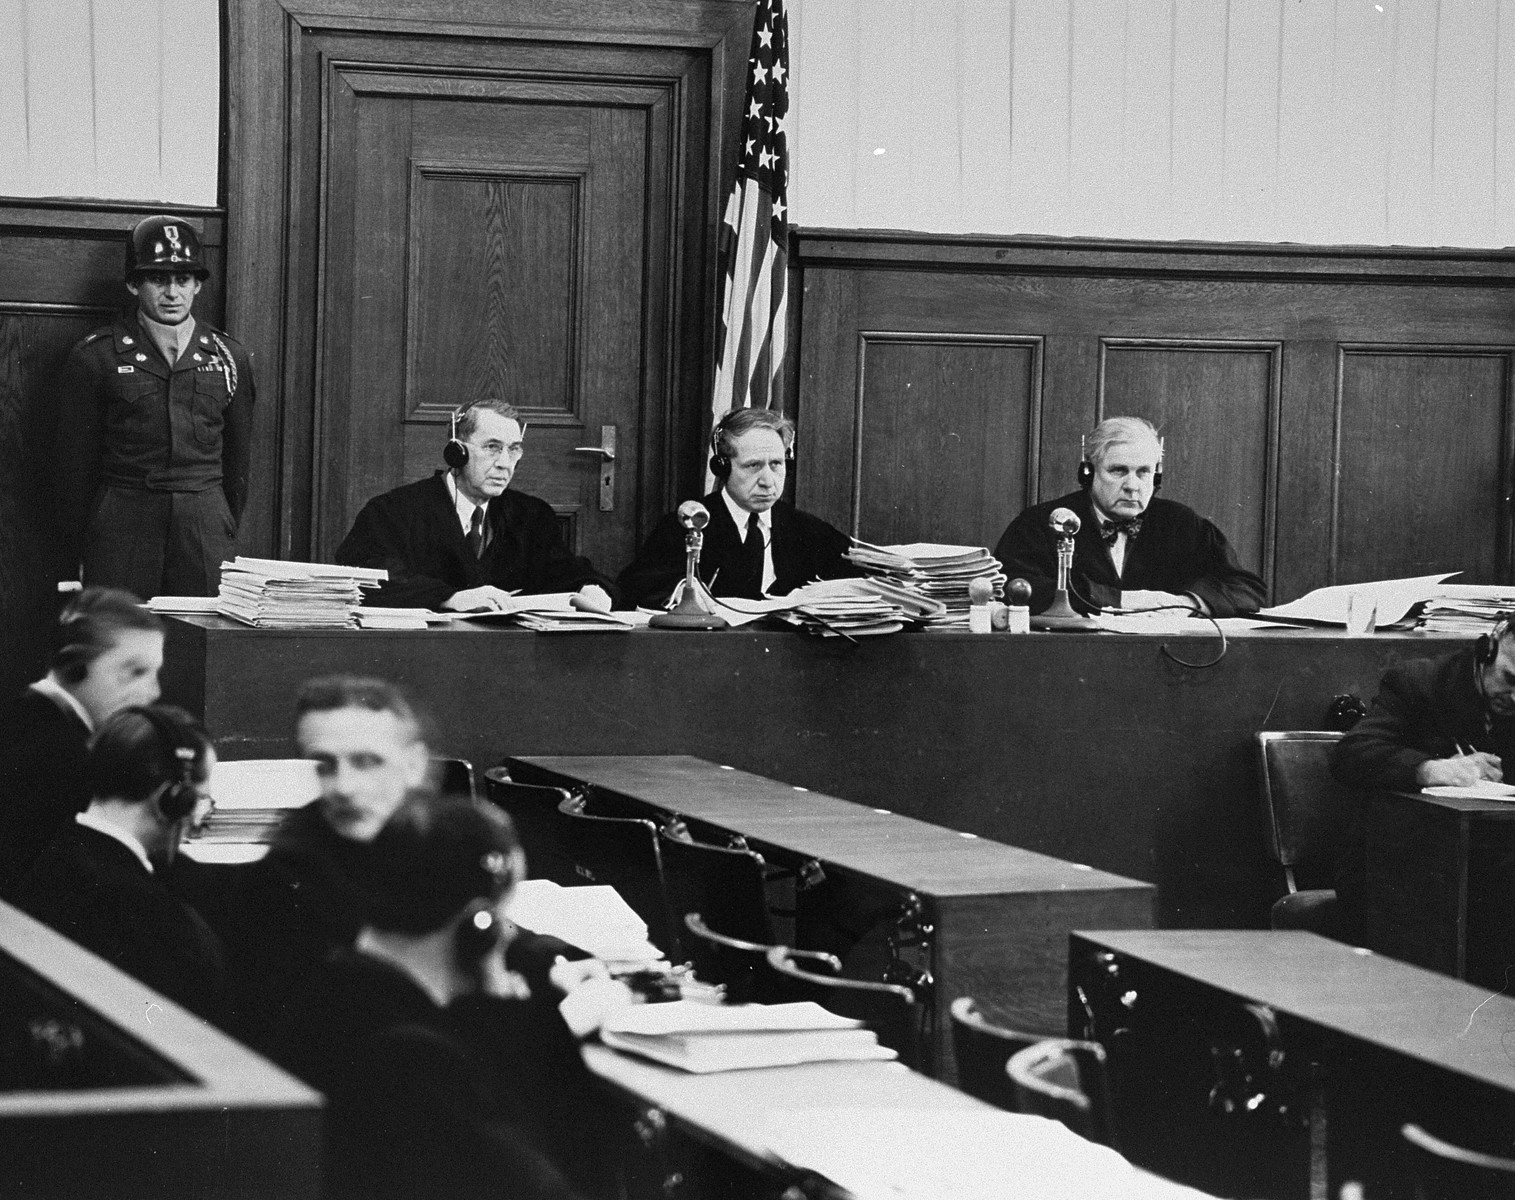 The judges of Military Tribunal II-A, hearing the Einsatzgruppen Trial, in a smaller courtroom in the Palace of Justice.  Pictured left to right are John J. Speight, Michael A. Musmanno, and Richard D. Dixon.